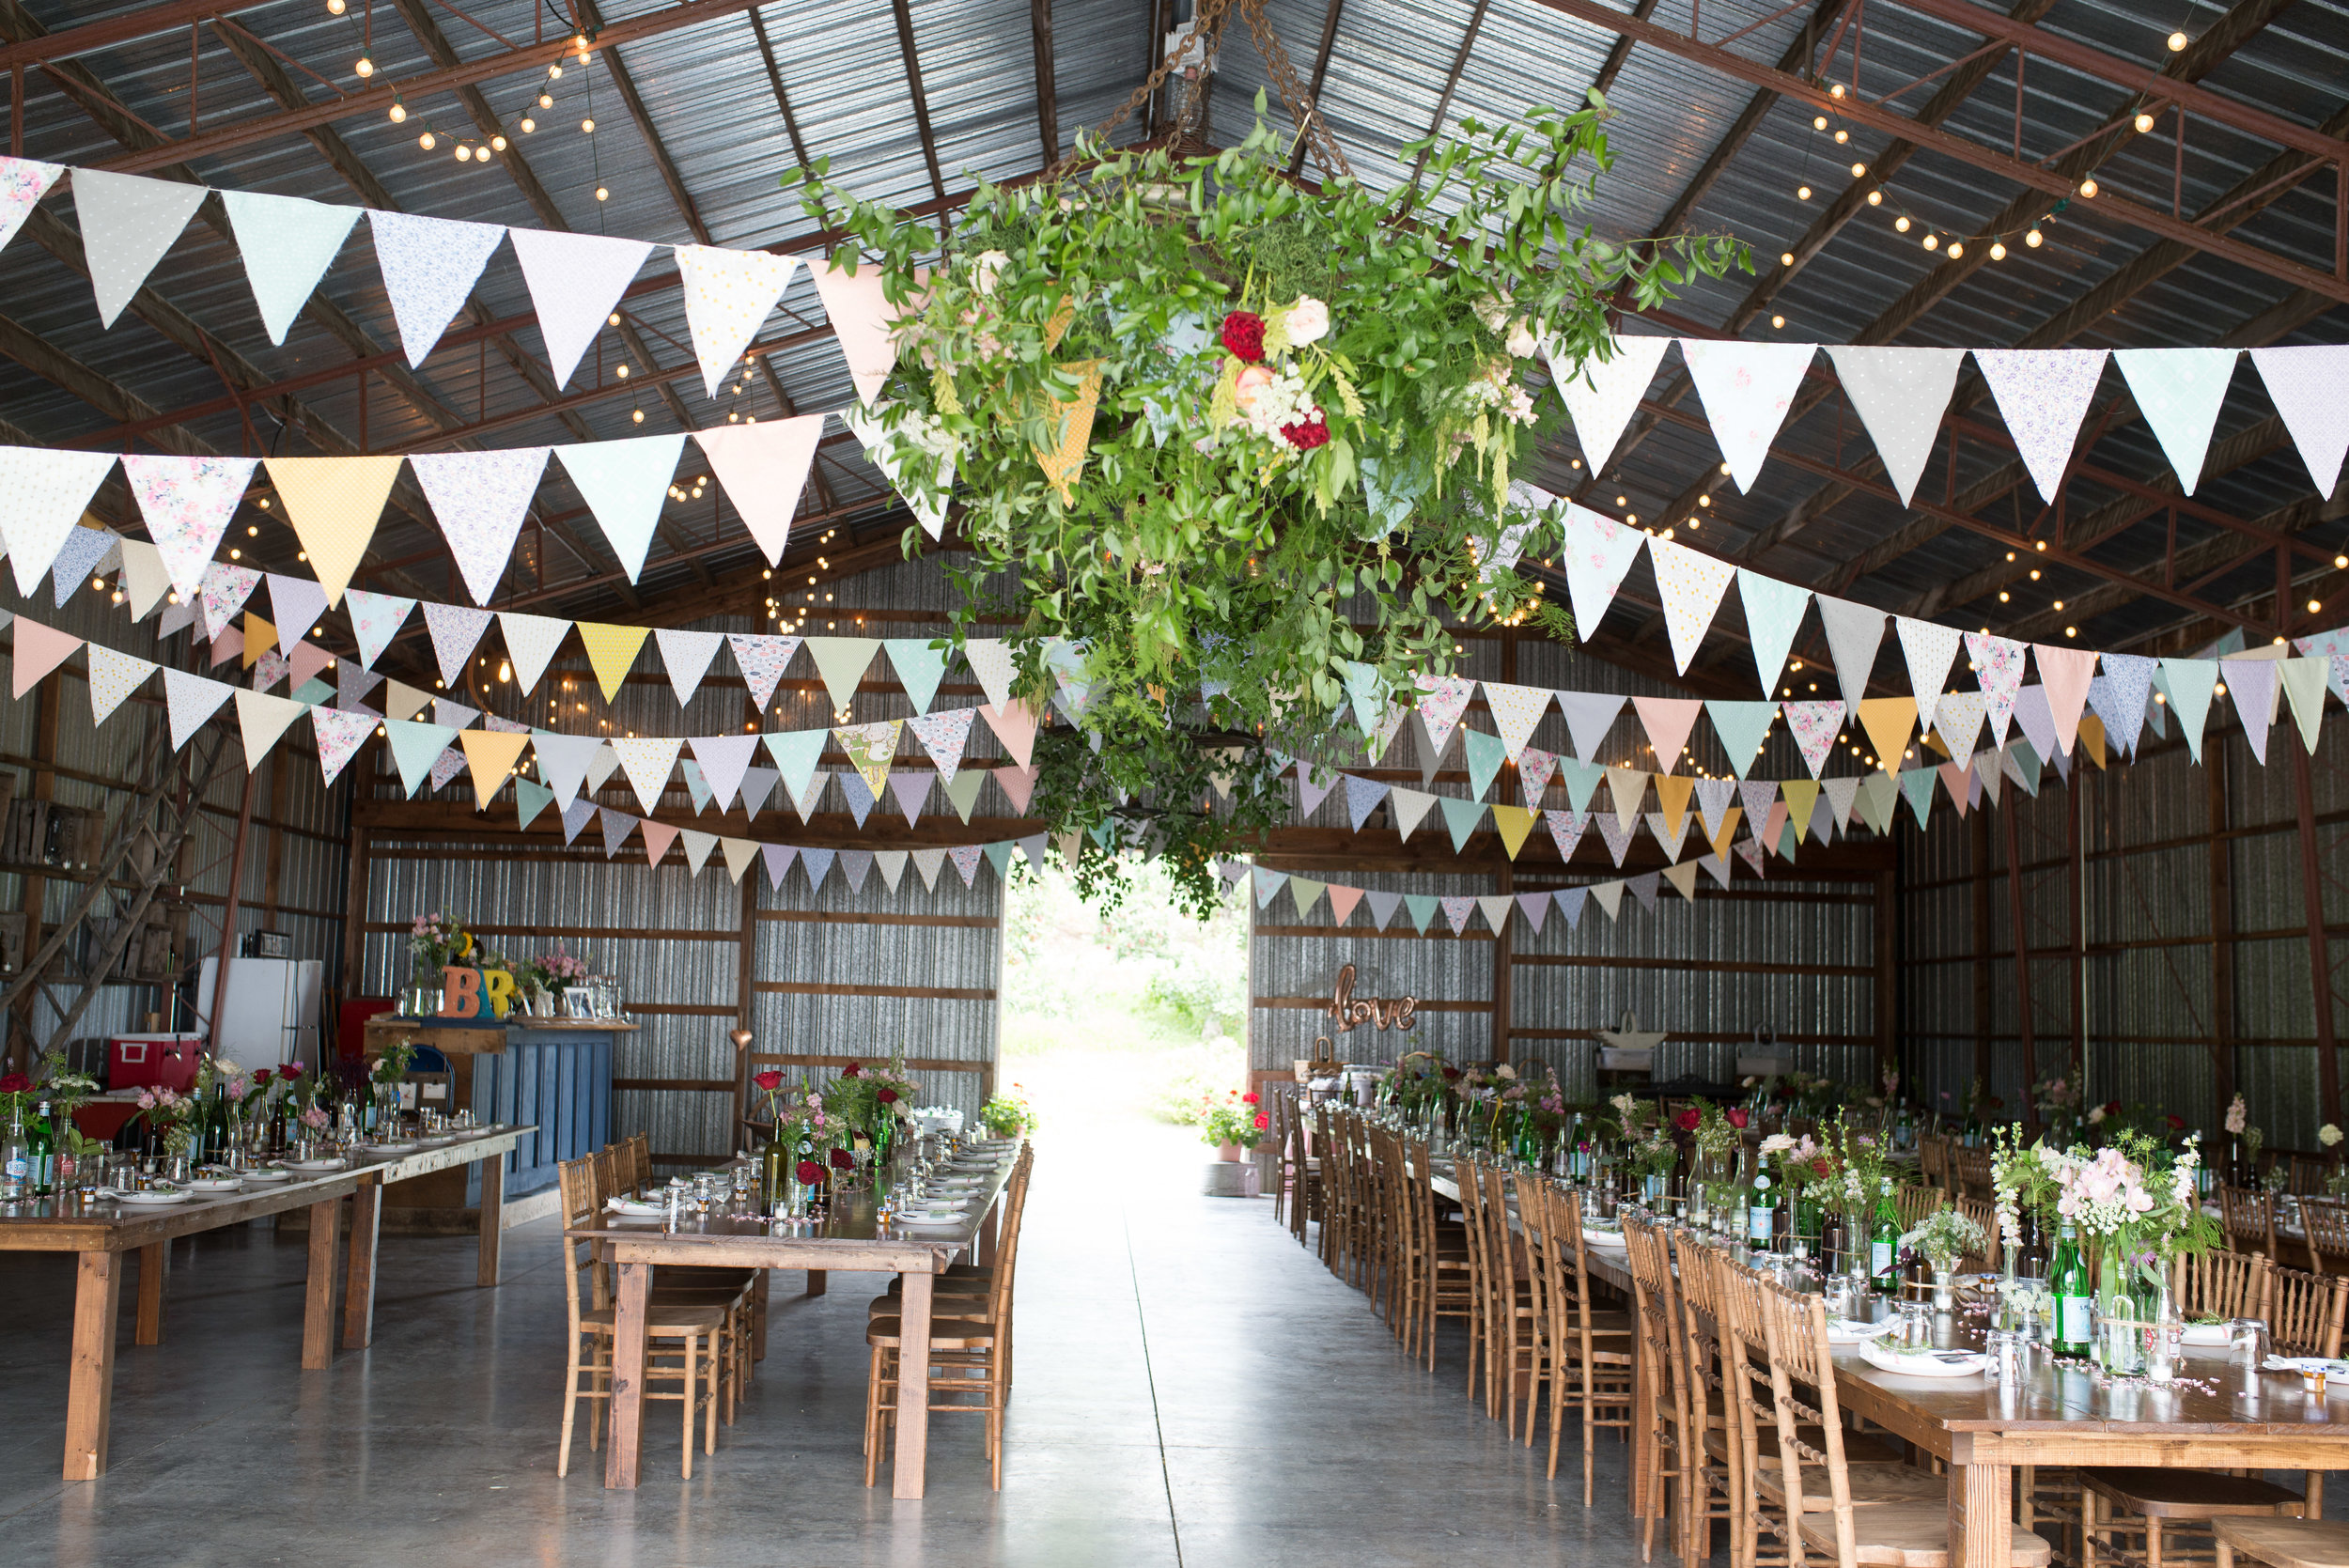 A hanging wild garden! Greenery and floral chandelier.